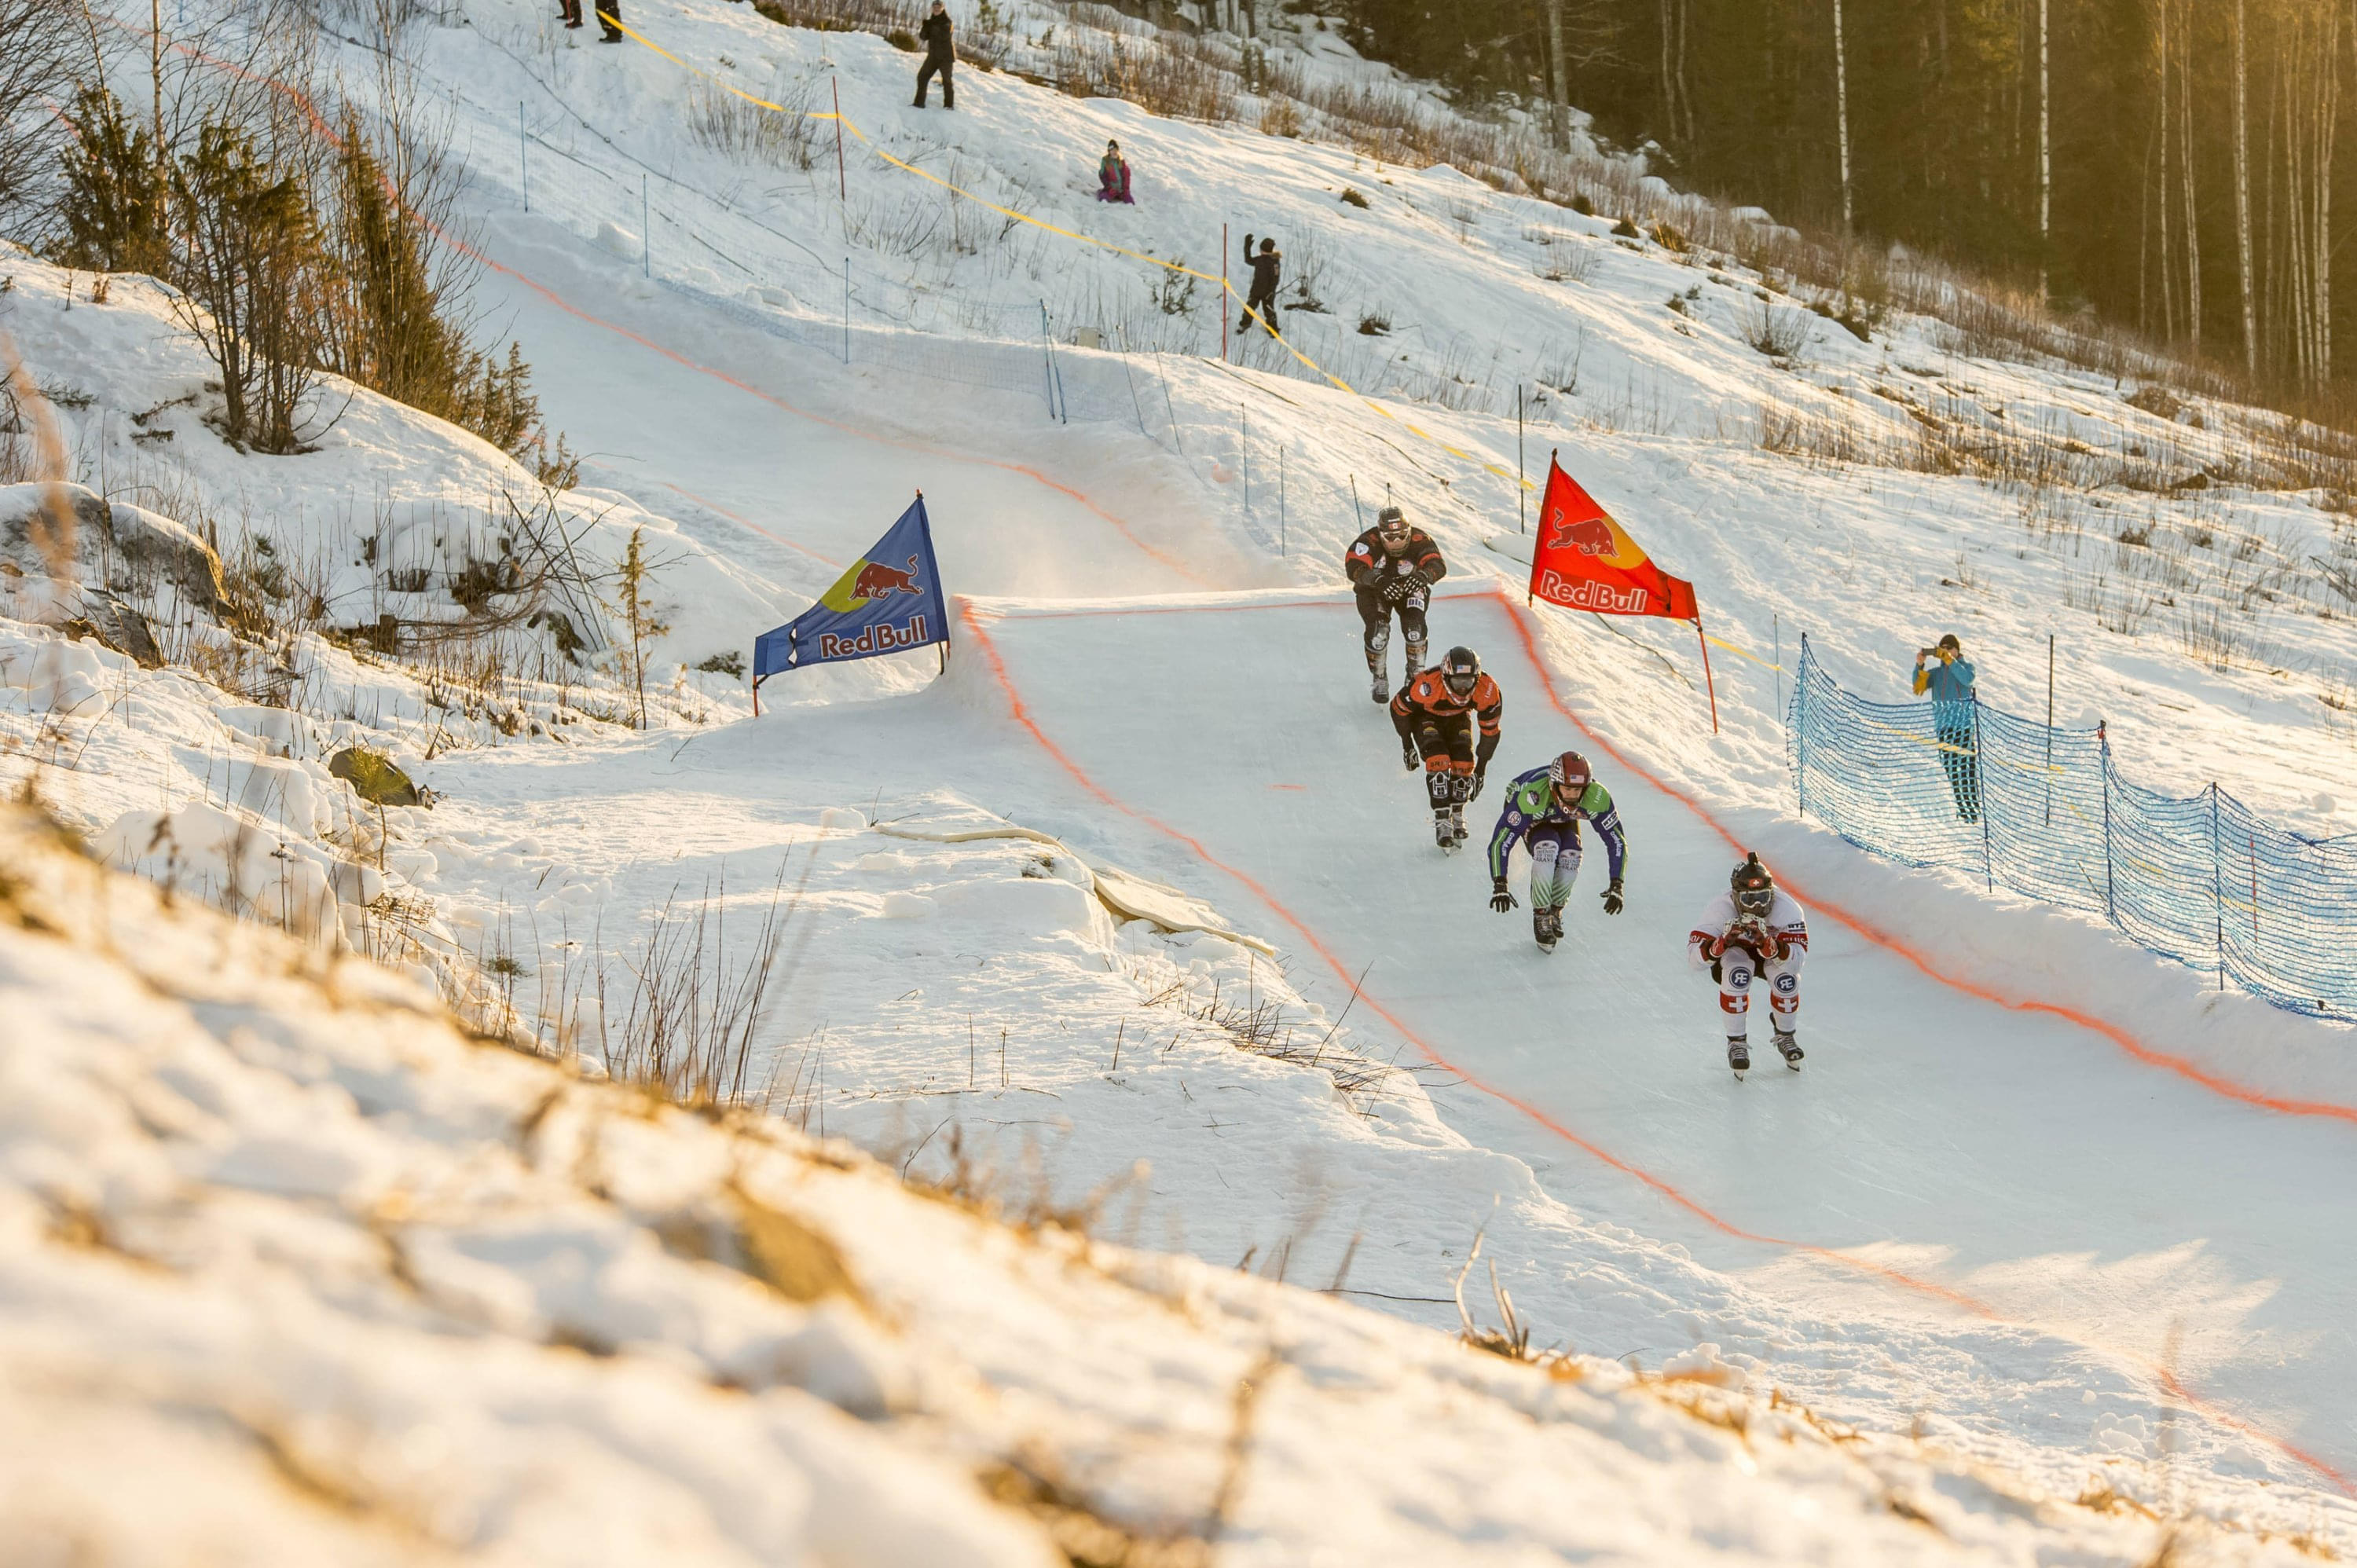 Jim De Paoli leads as he closes in on the Rautalampi finishing line. Image: Mark Roe / Red Bull Content Pool